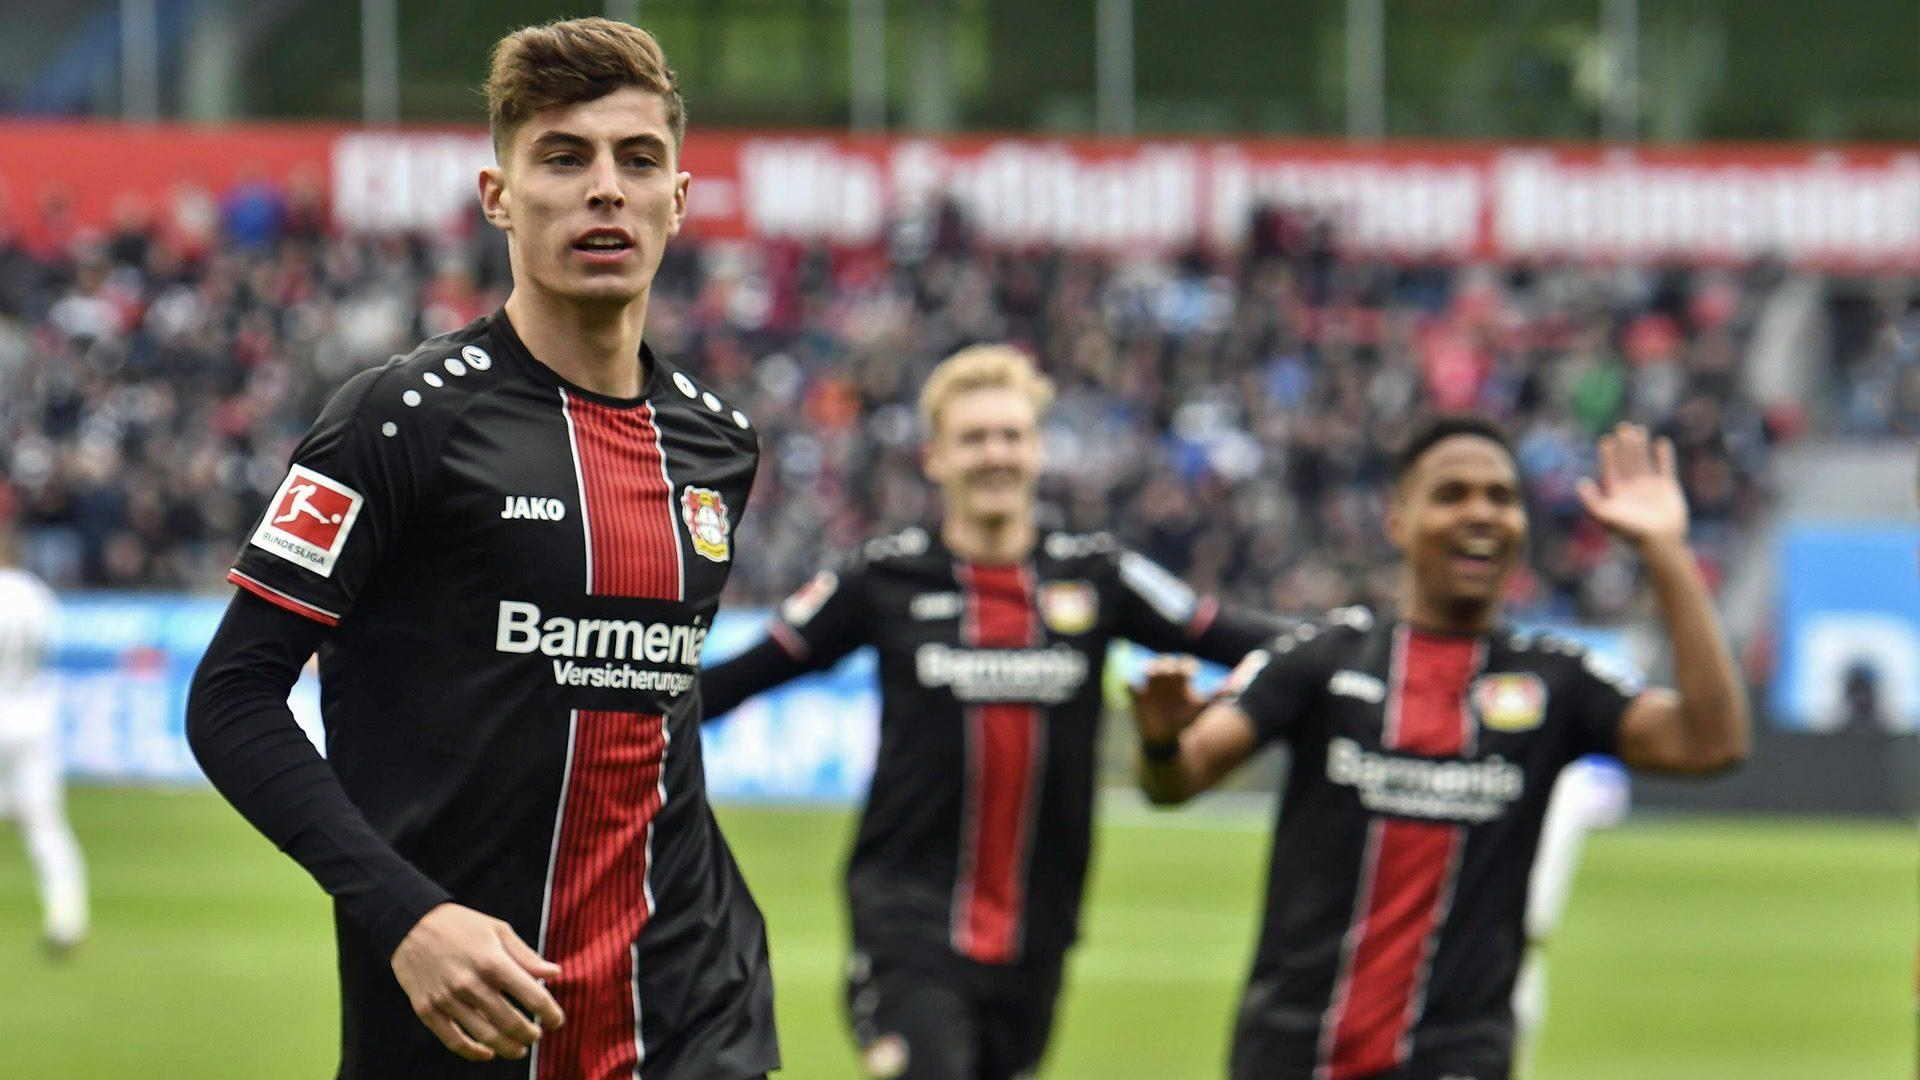 Kai Havertz Leverkusen Wallpaper